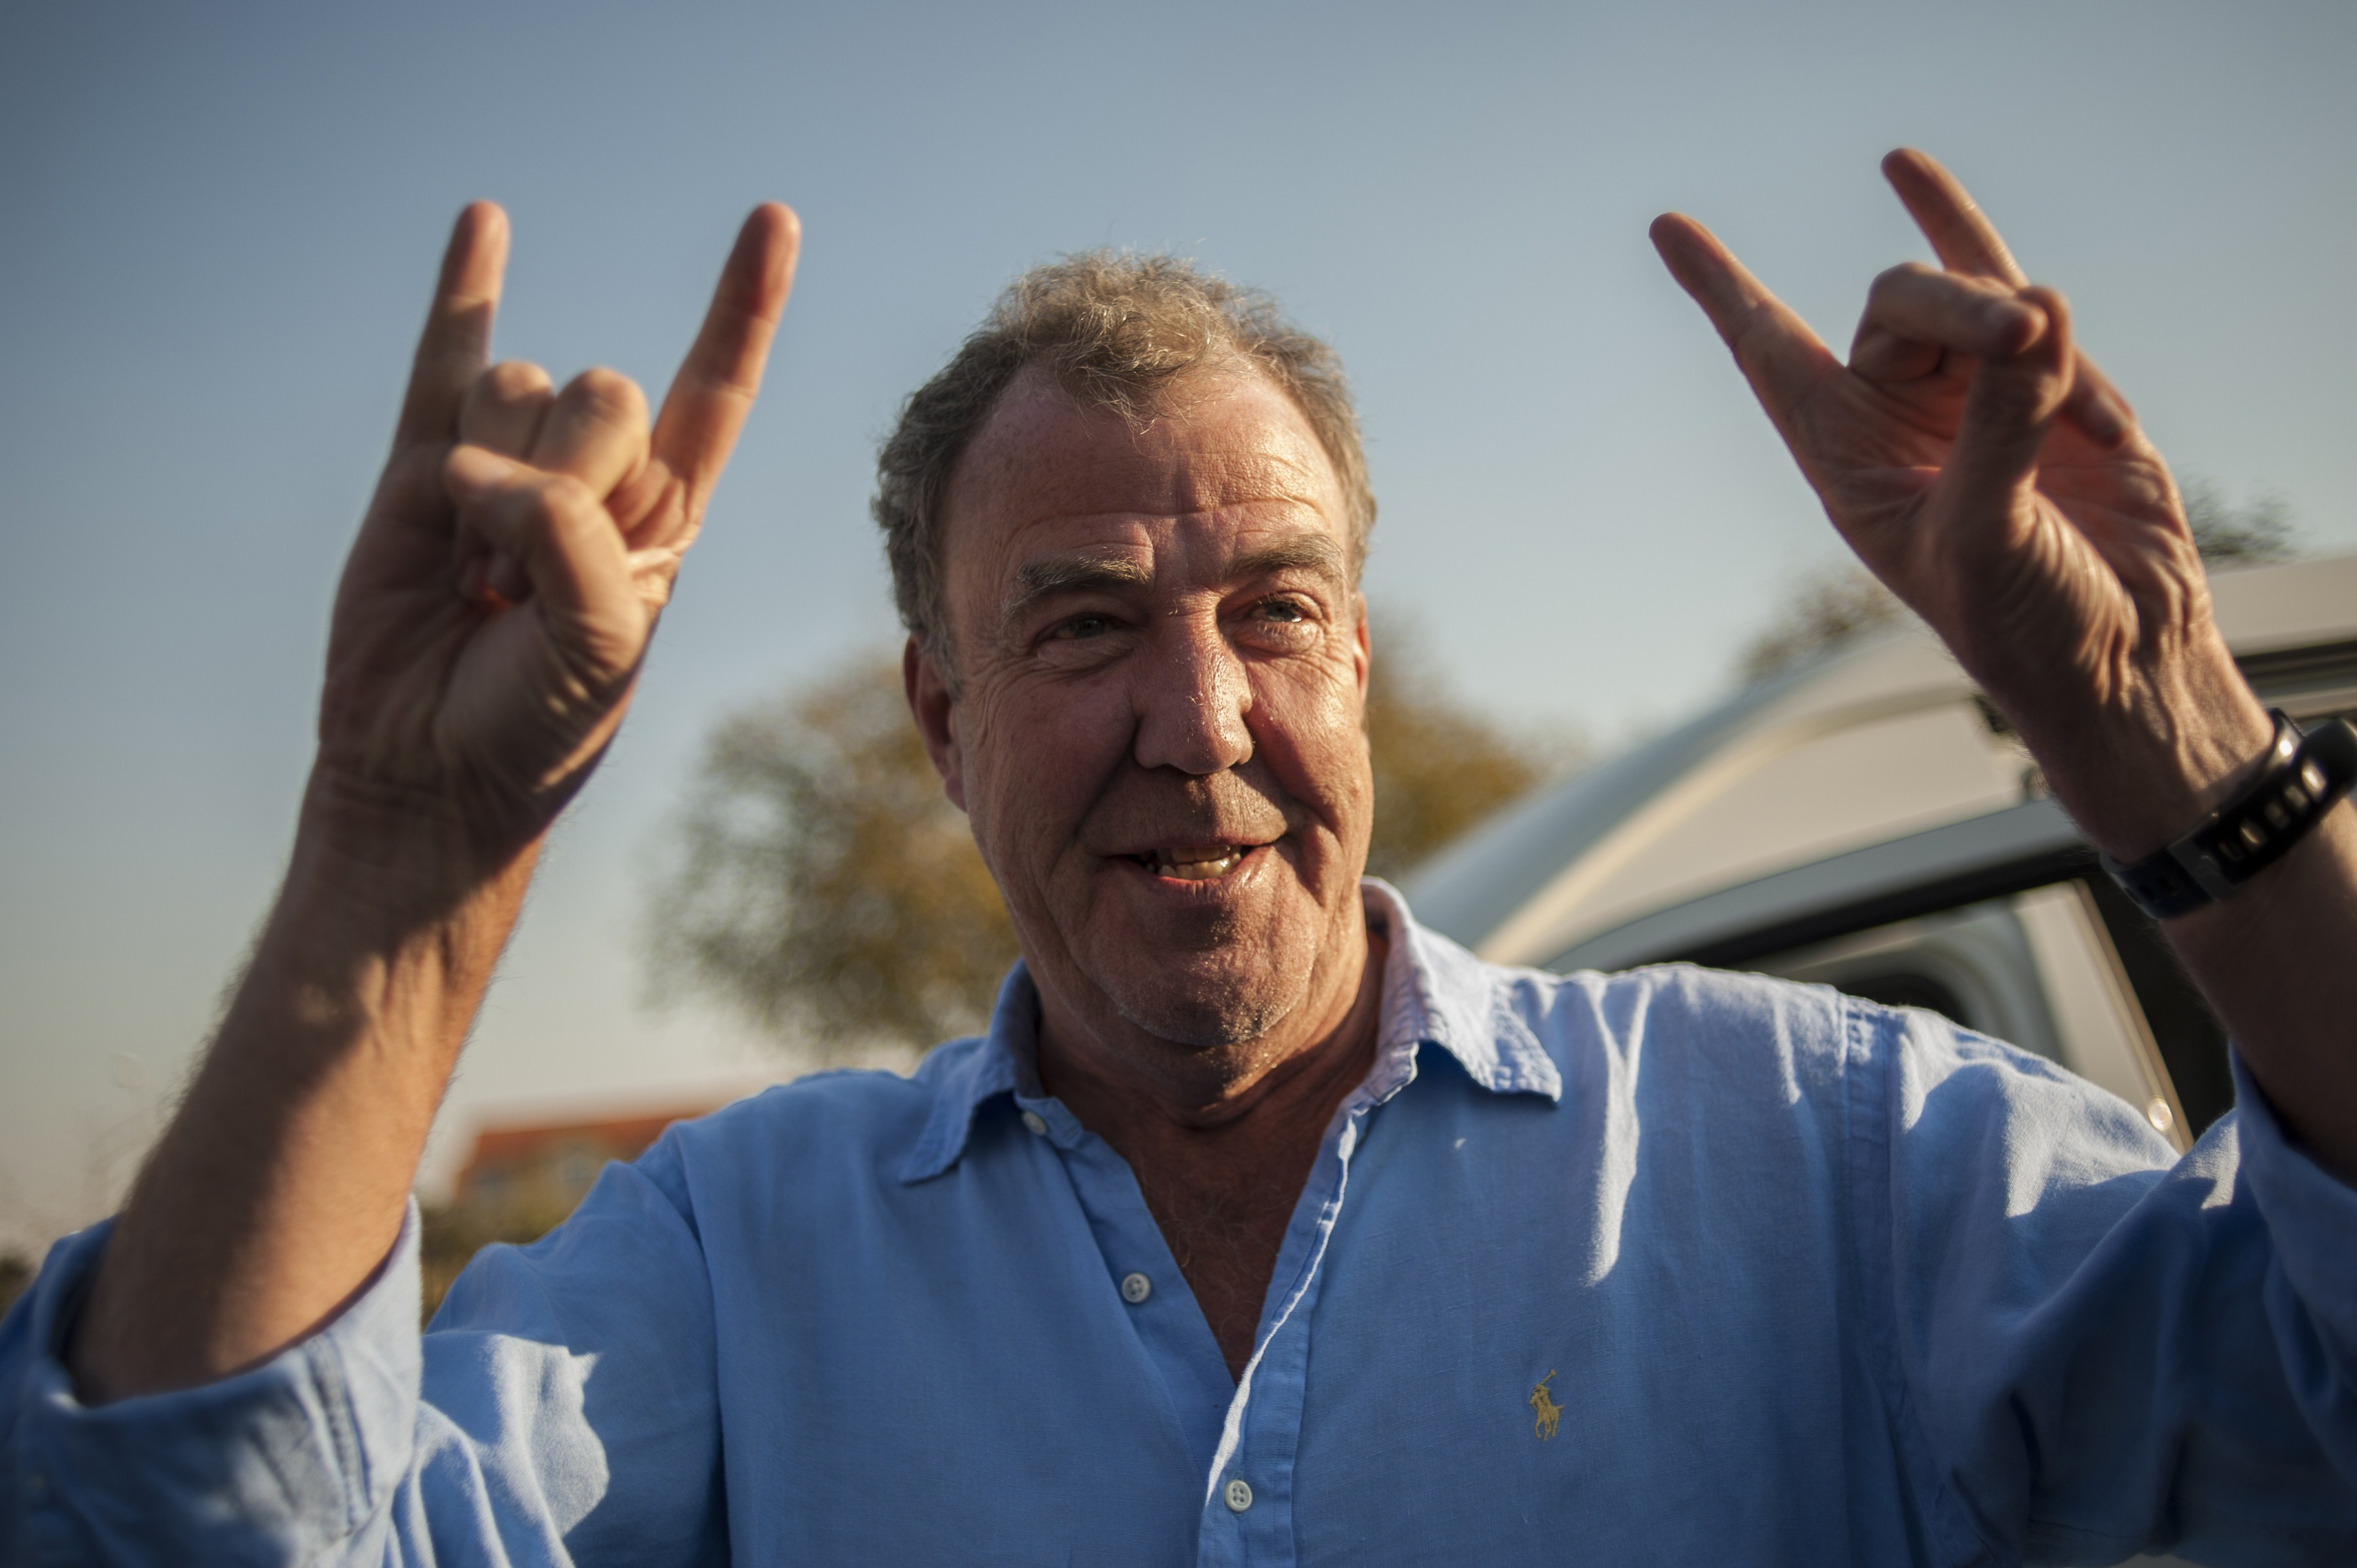 Jeremy Clarkson says he is heading for an early grave ahead of The Grand Tour debut